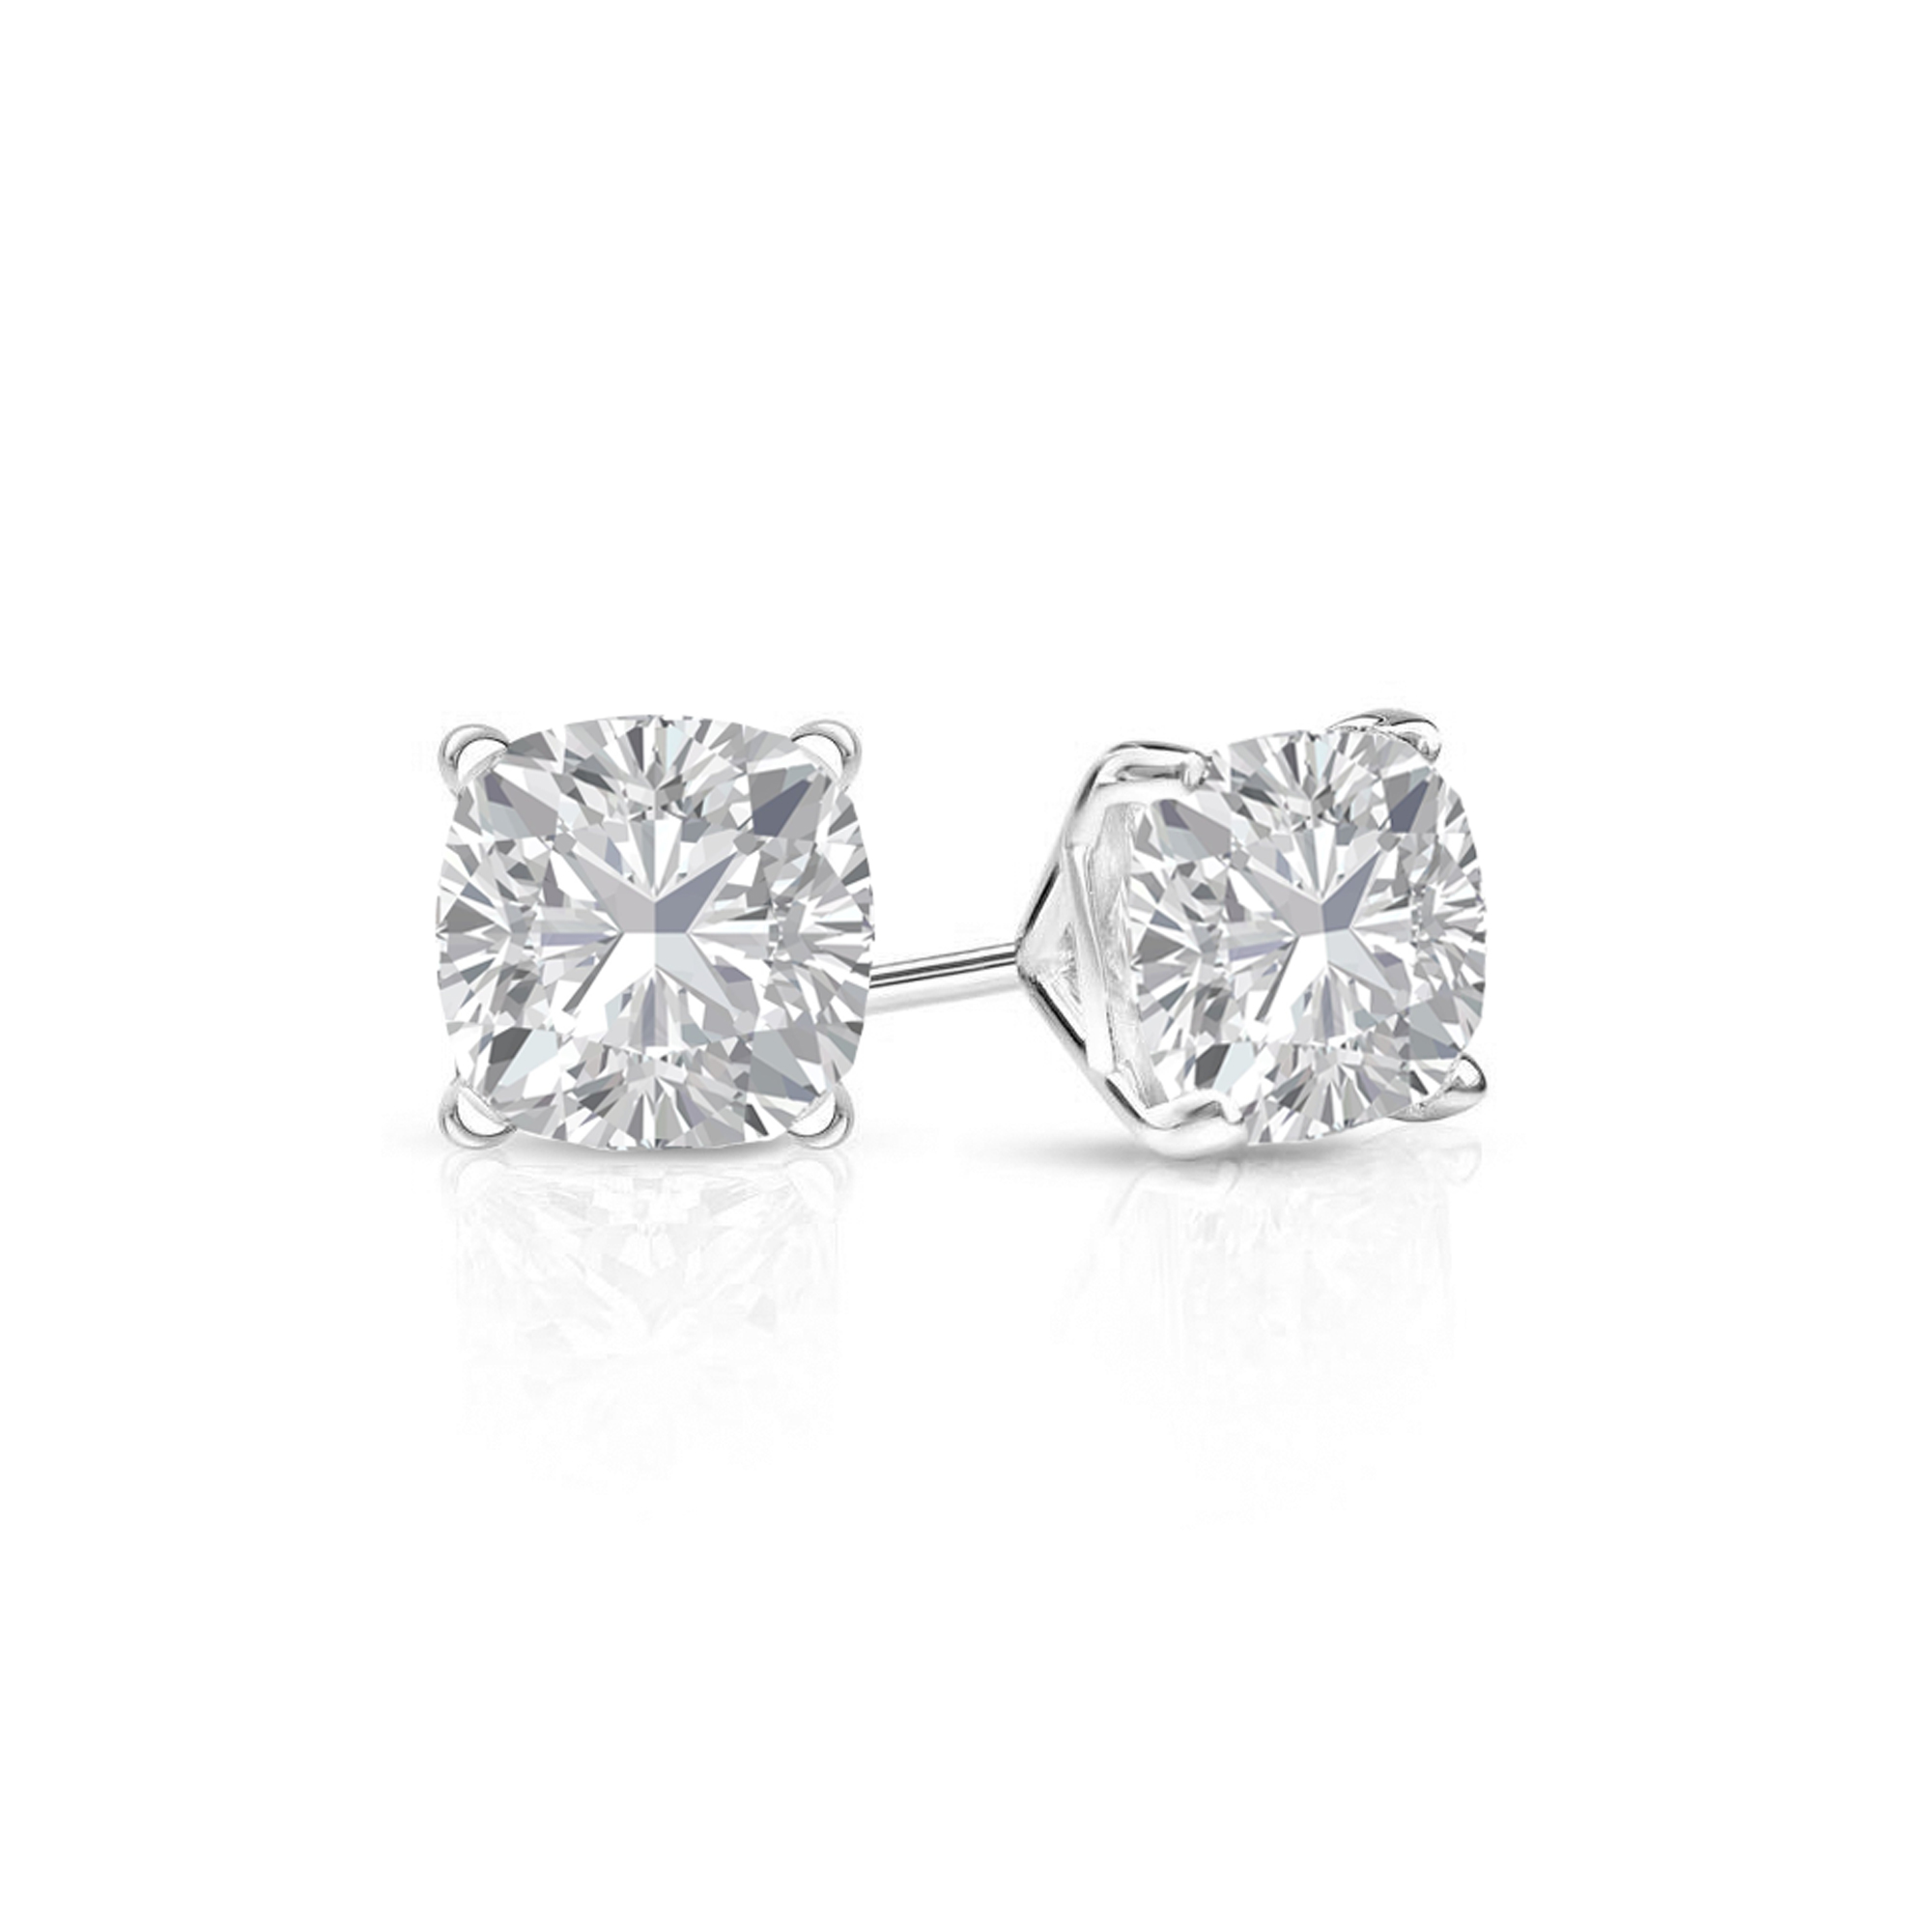 earrings brilliant studs free watches moissanite shipping twobirch white today mm dew gold overstock twt product jewelry ct